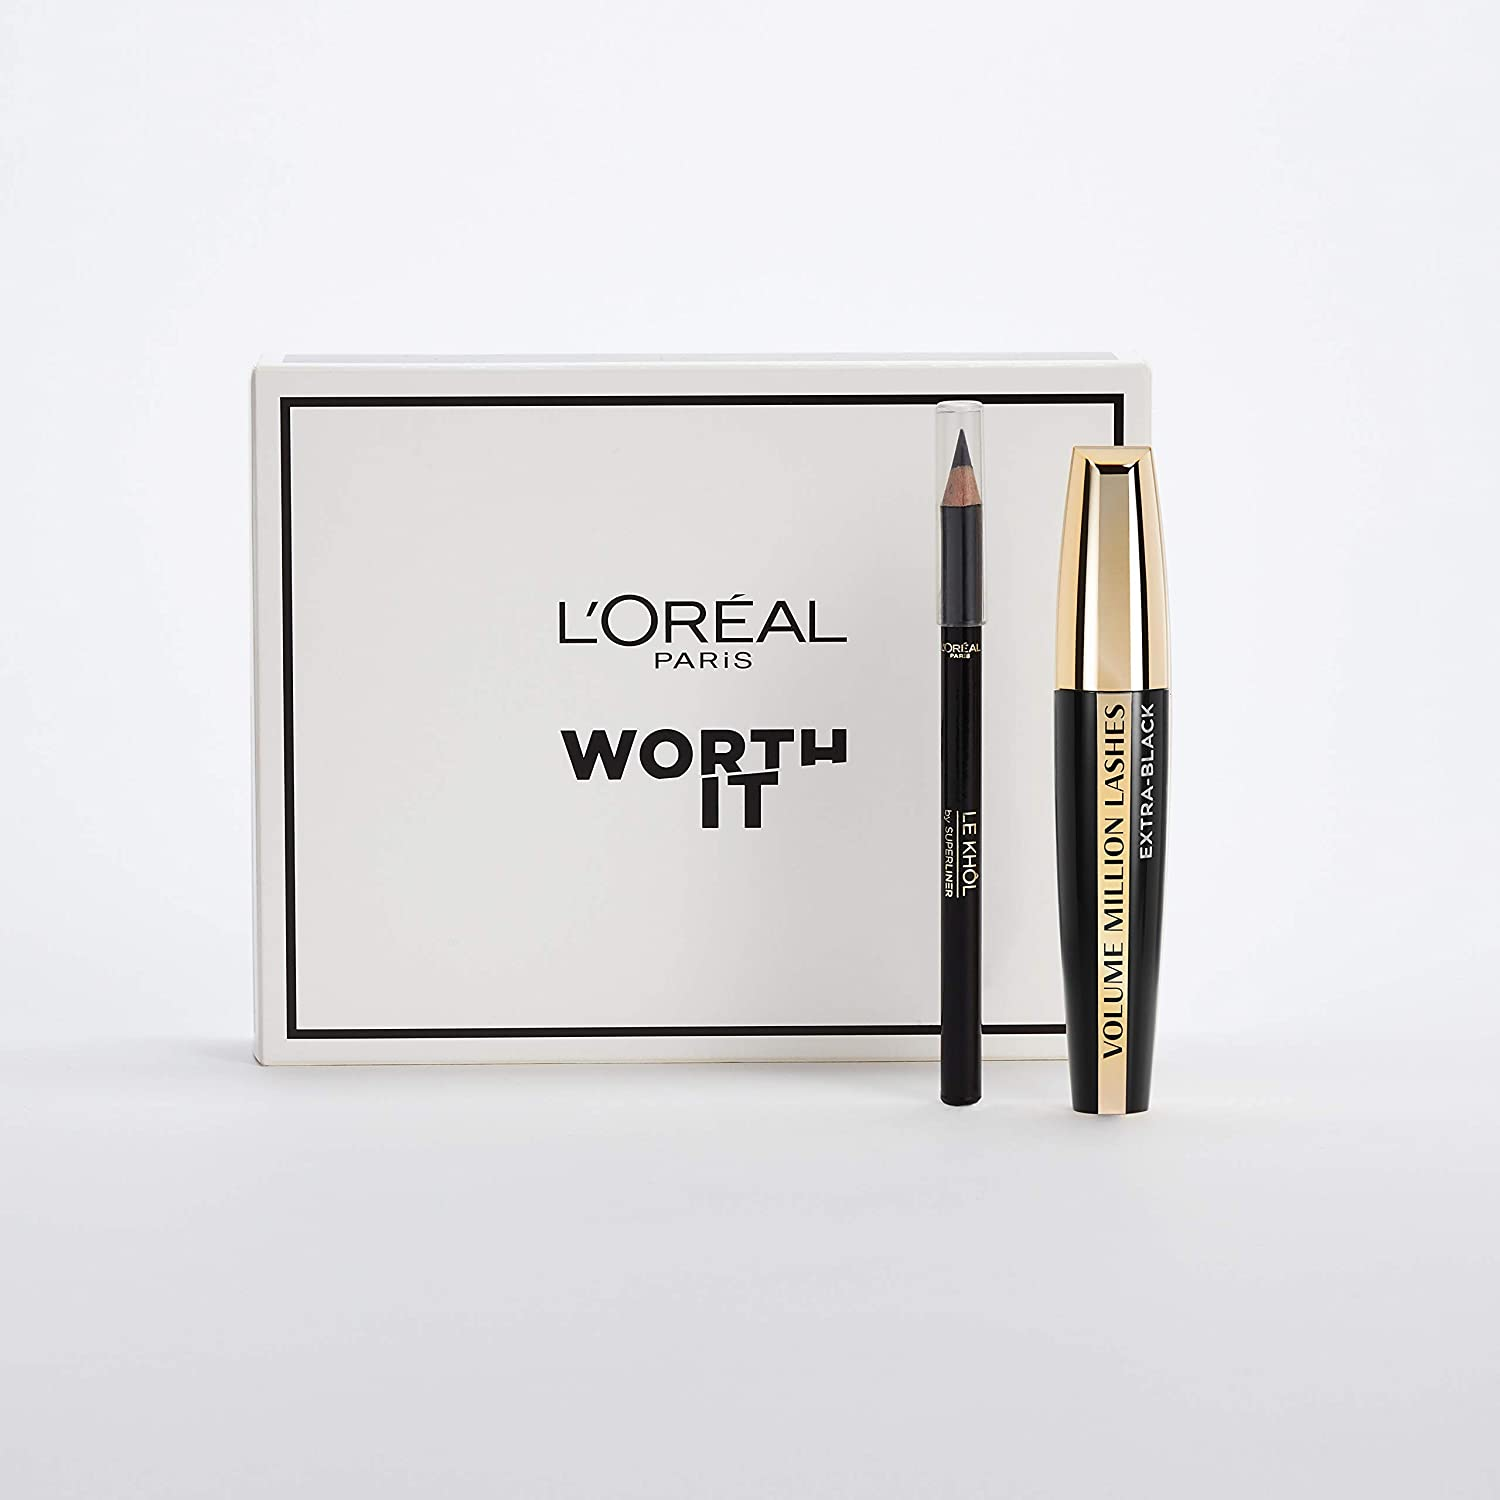 LOréal Paris Kit Máscara Volume Millon Lashes Extra Black y Lápiz de Ojos Superliner Le Khol Negro: Amazon.es: Belleza